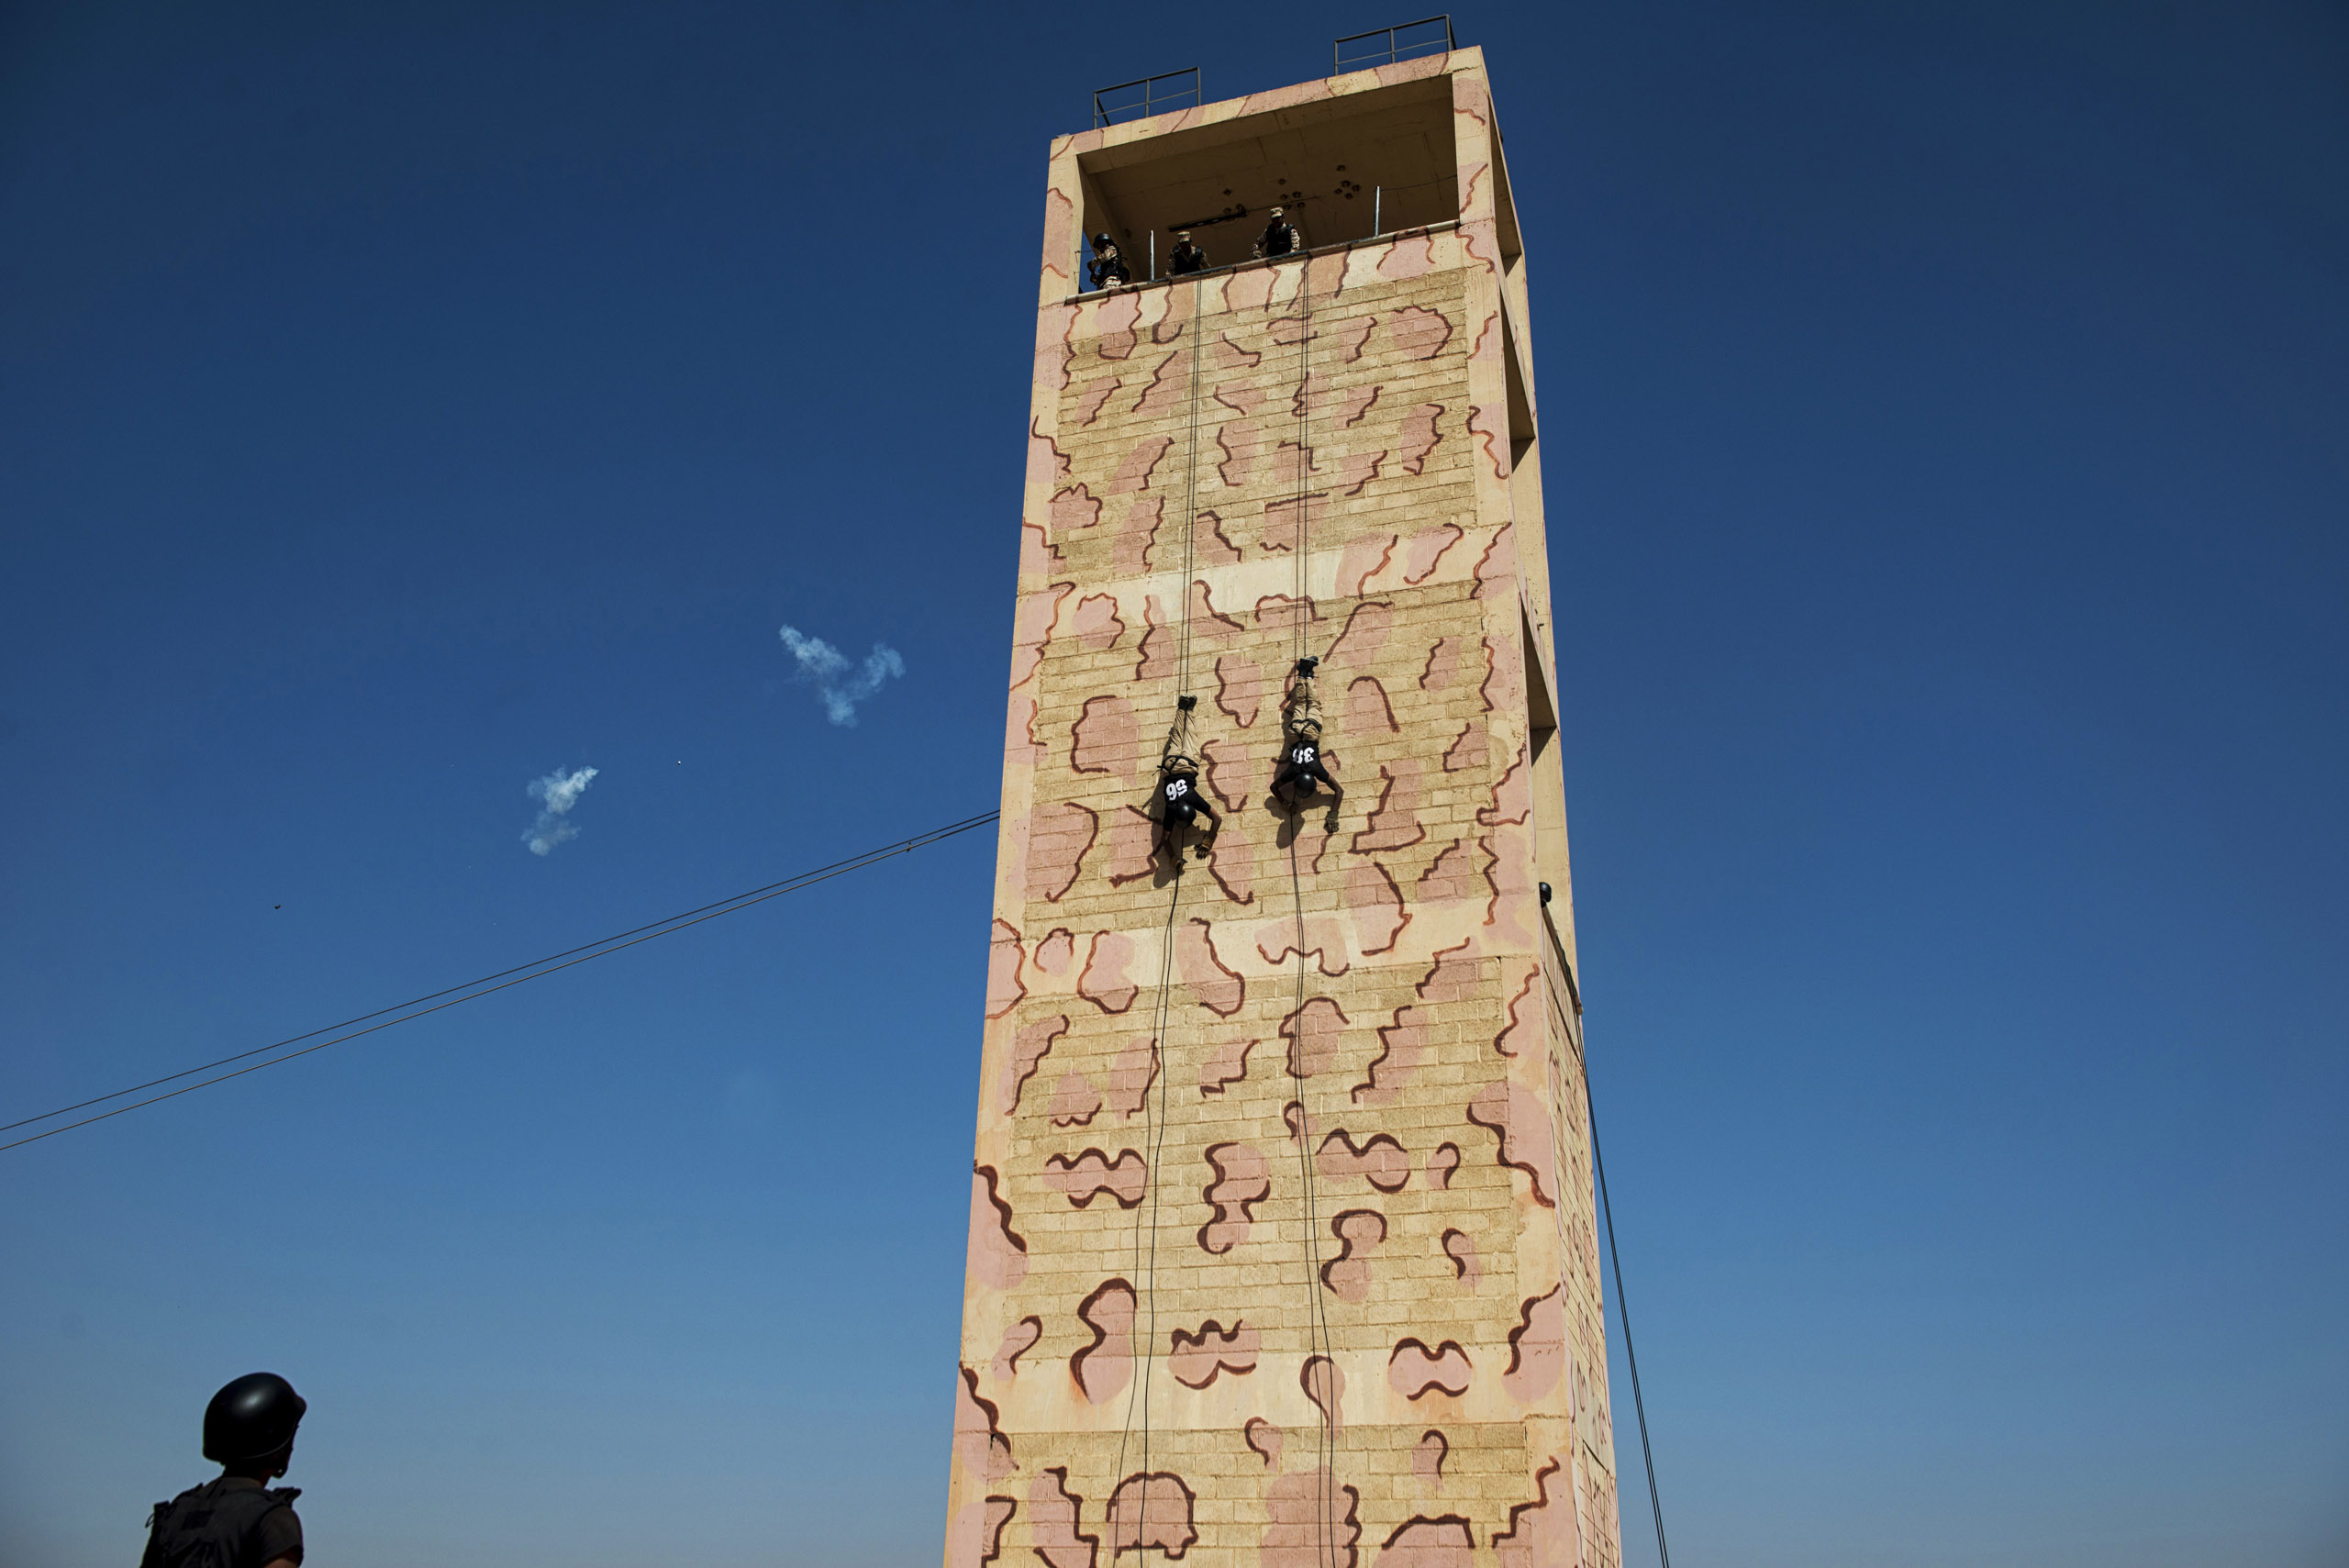 Troops with the Saudi Special Security Forces repel down a building during a simulated terrorist attack, March 5, 2013.